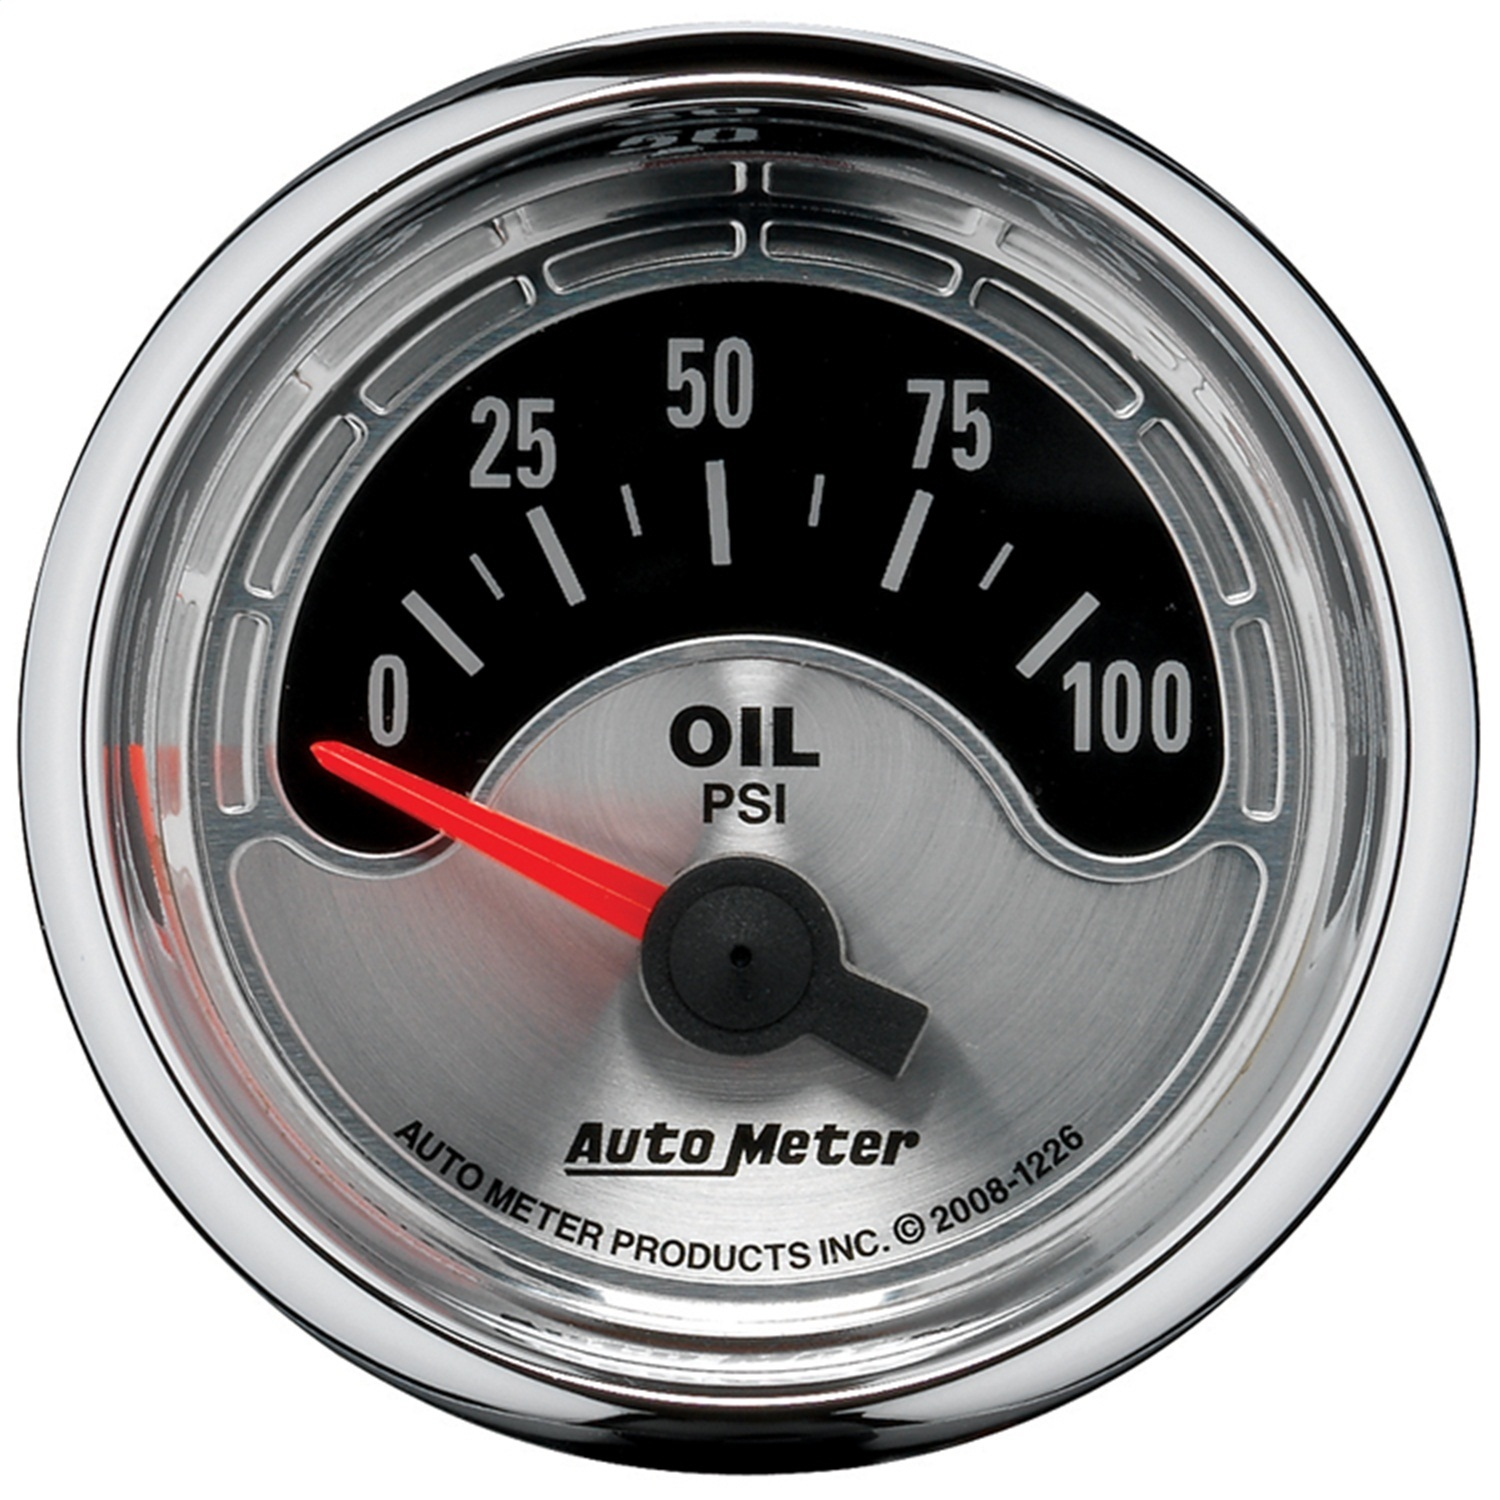 AutoMeter 1226 American Muscle (TM) Gauge Oil Pressure - image 2 of 2